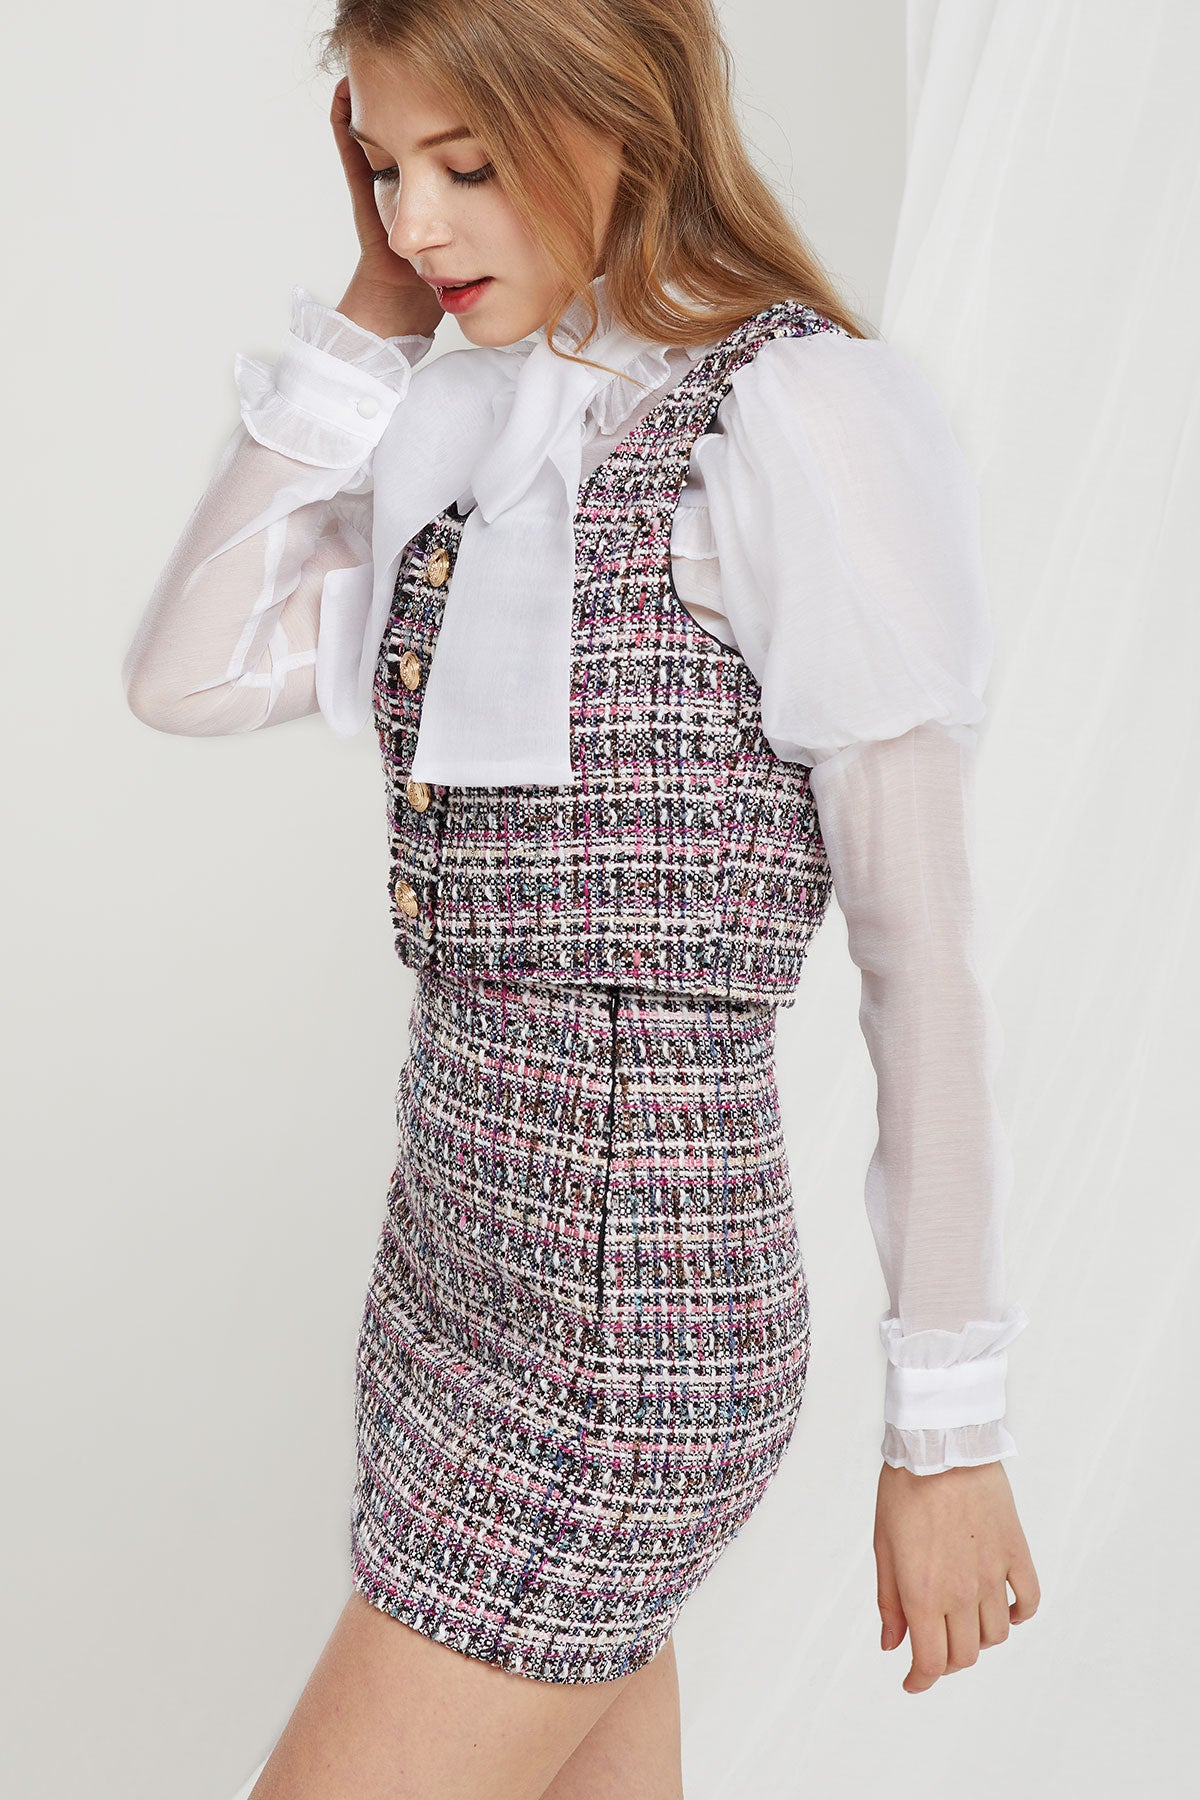 Whitney Tweed Vest and Skirt Set (Pre-Order)